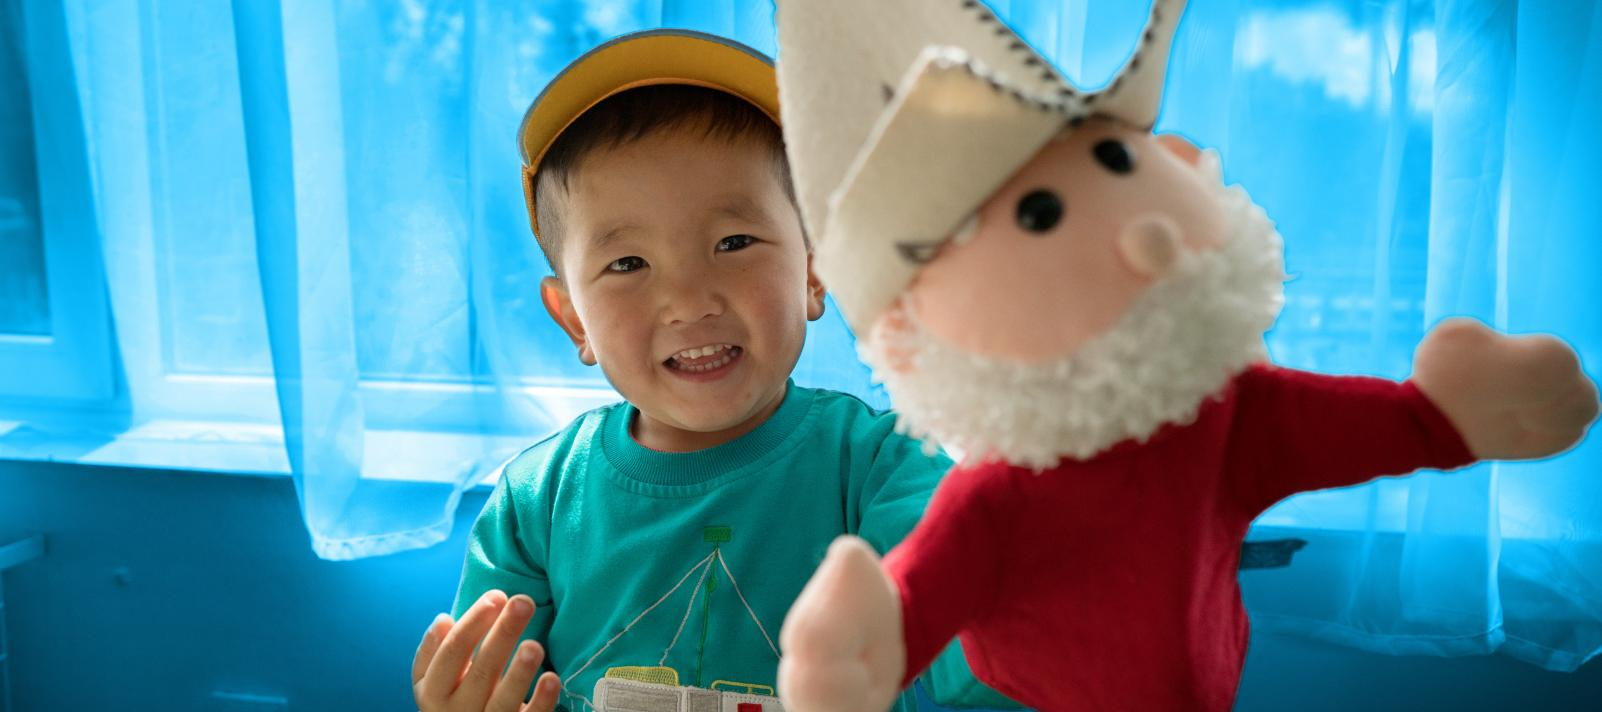 Smiling boy holds soft toy up to camera in Kyrgzstan.